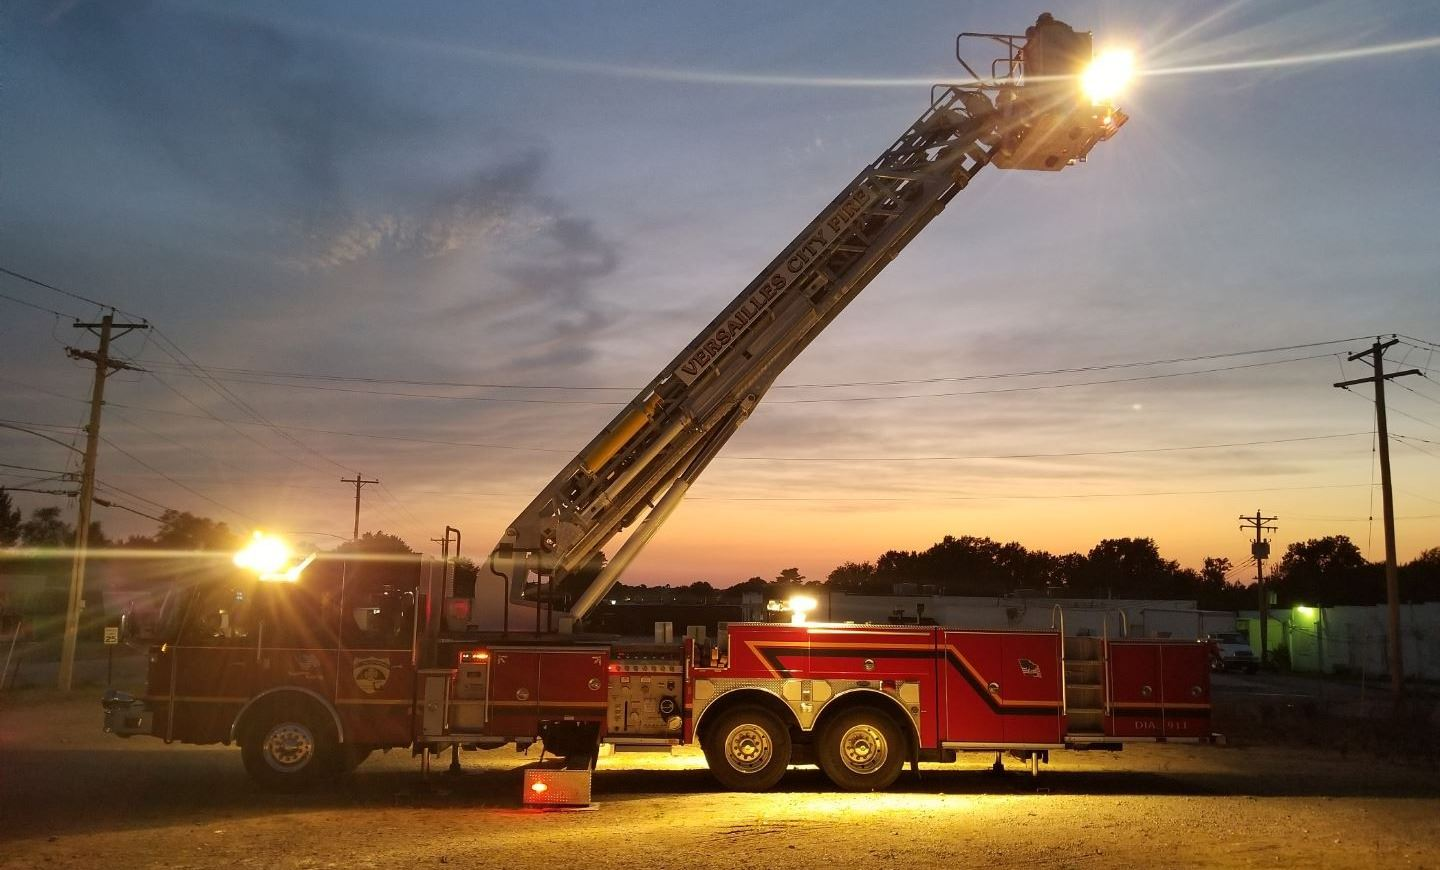 New Fire Truck - Night